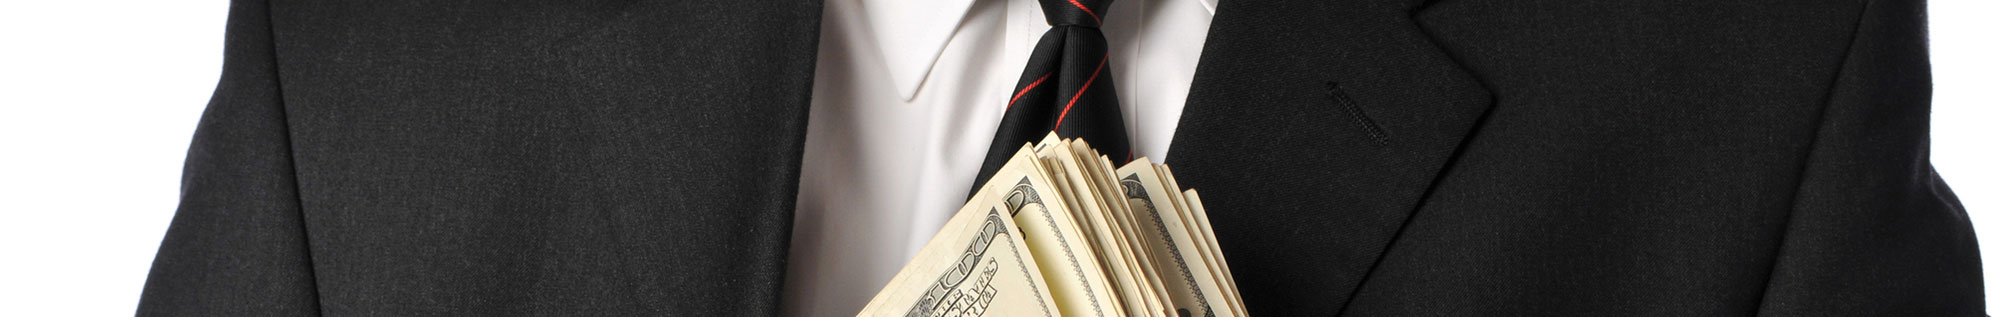 misappropriations - man in suit holding cash